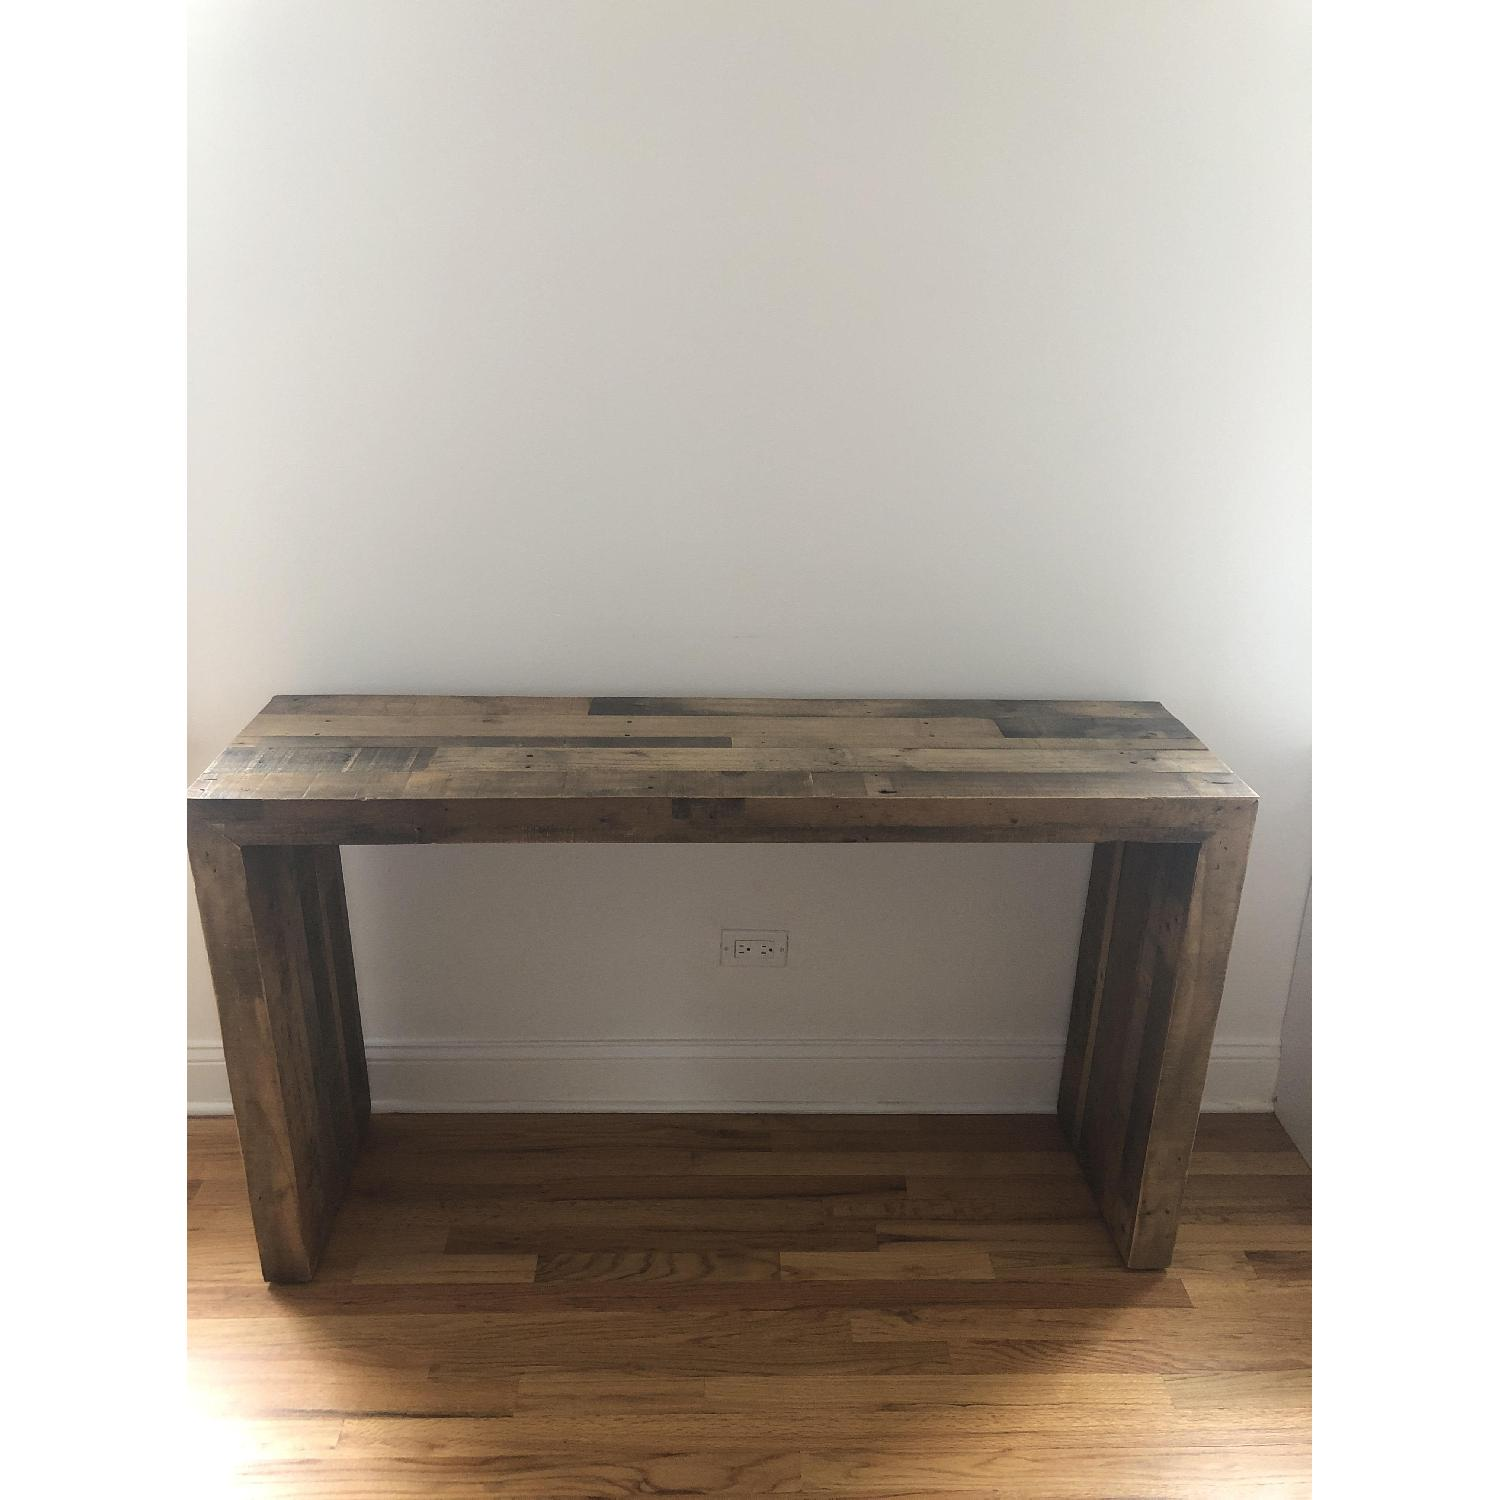 West Elm Reclaimed Wood Console Table - image-1